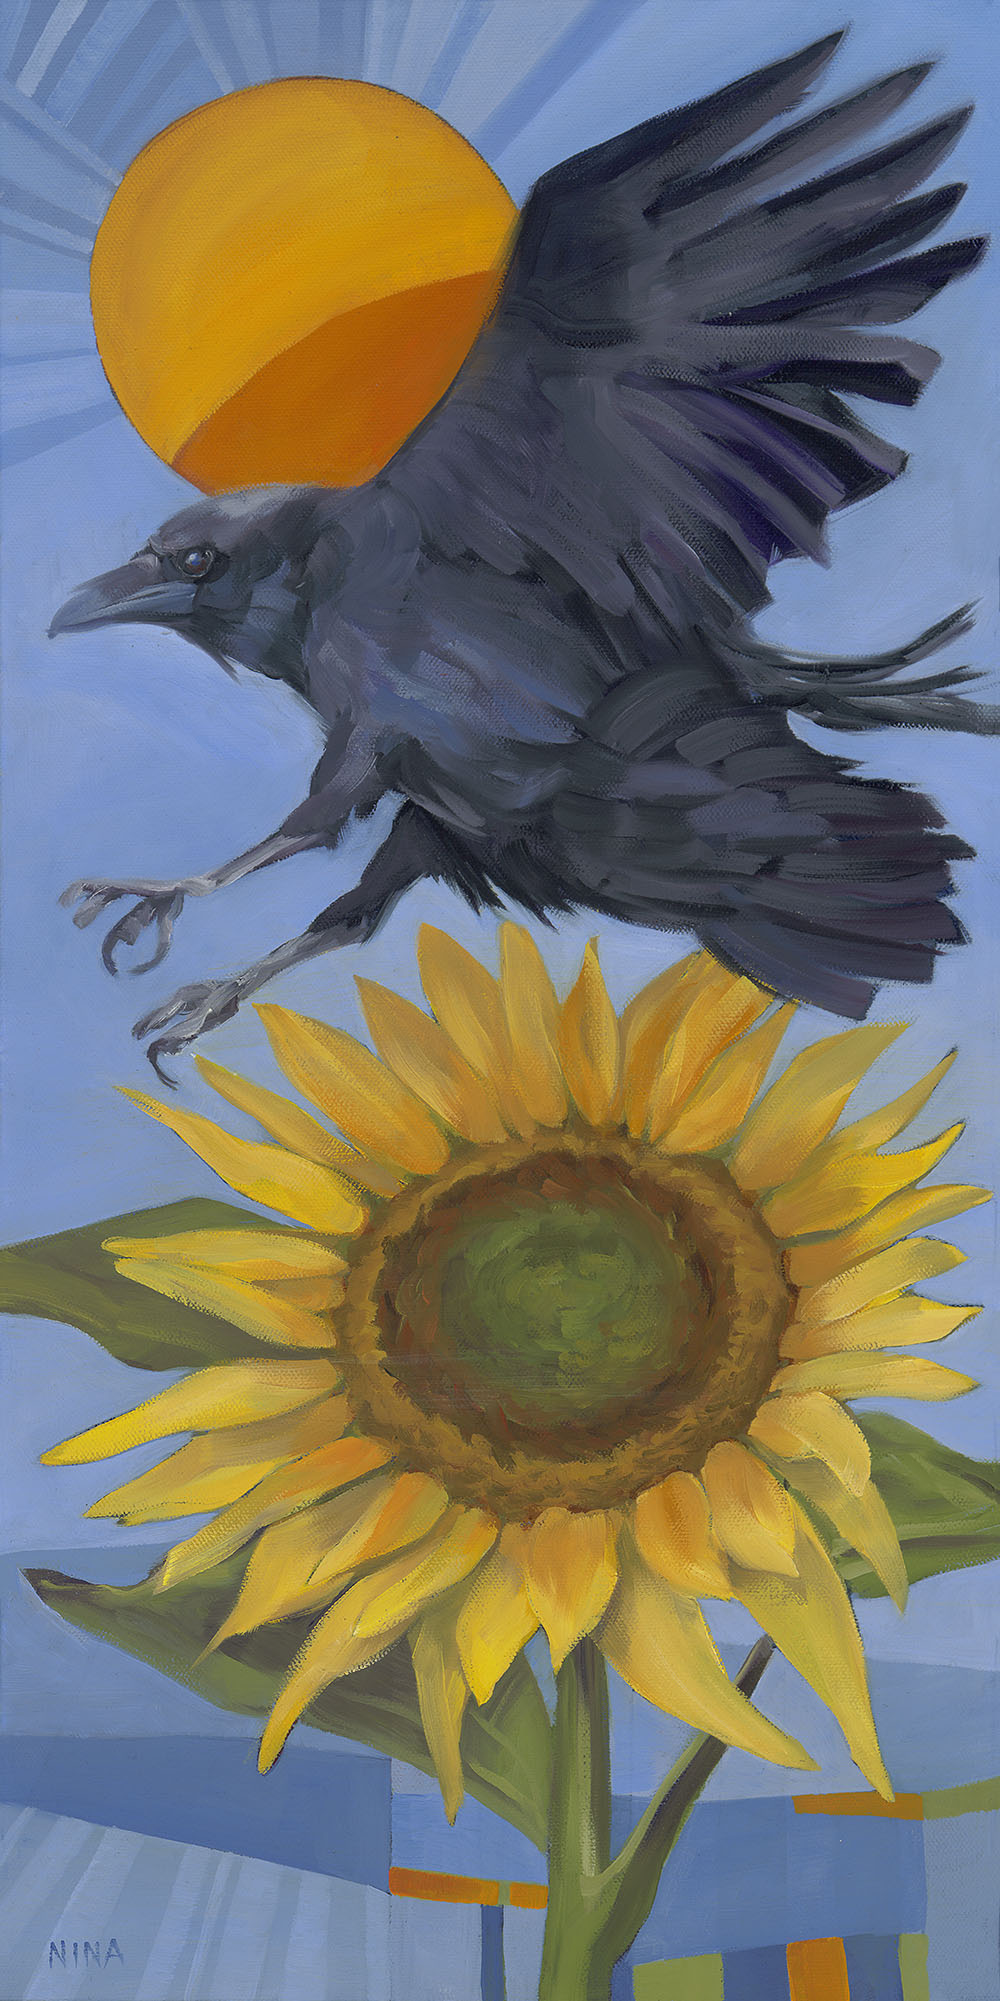 Painting of a crow flying over a sunflower.